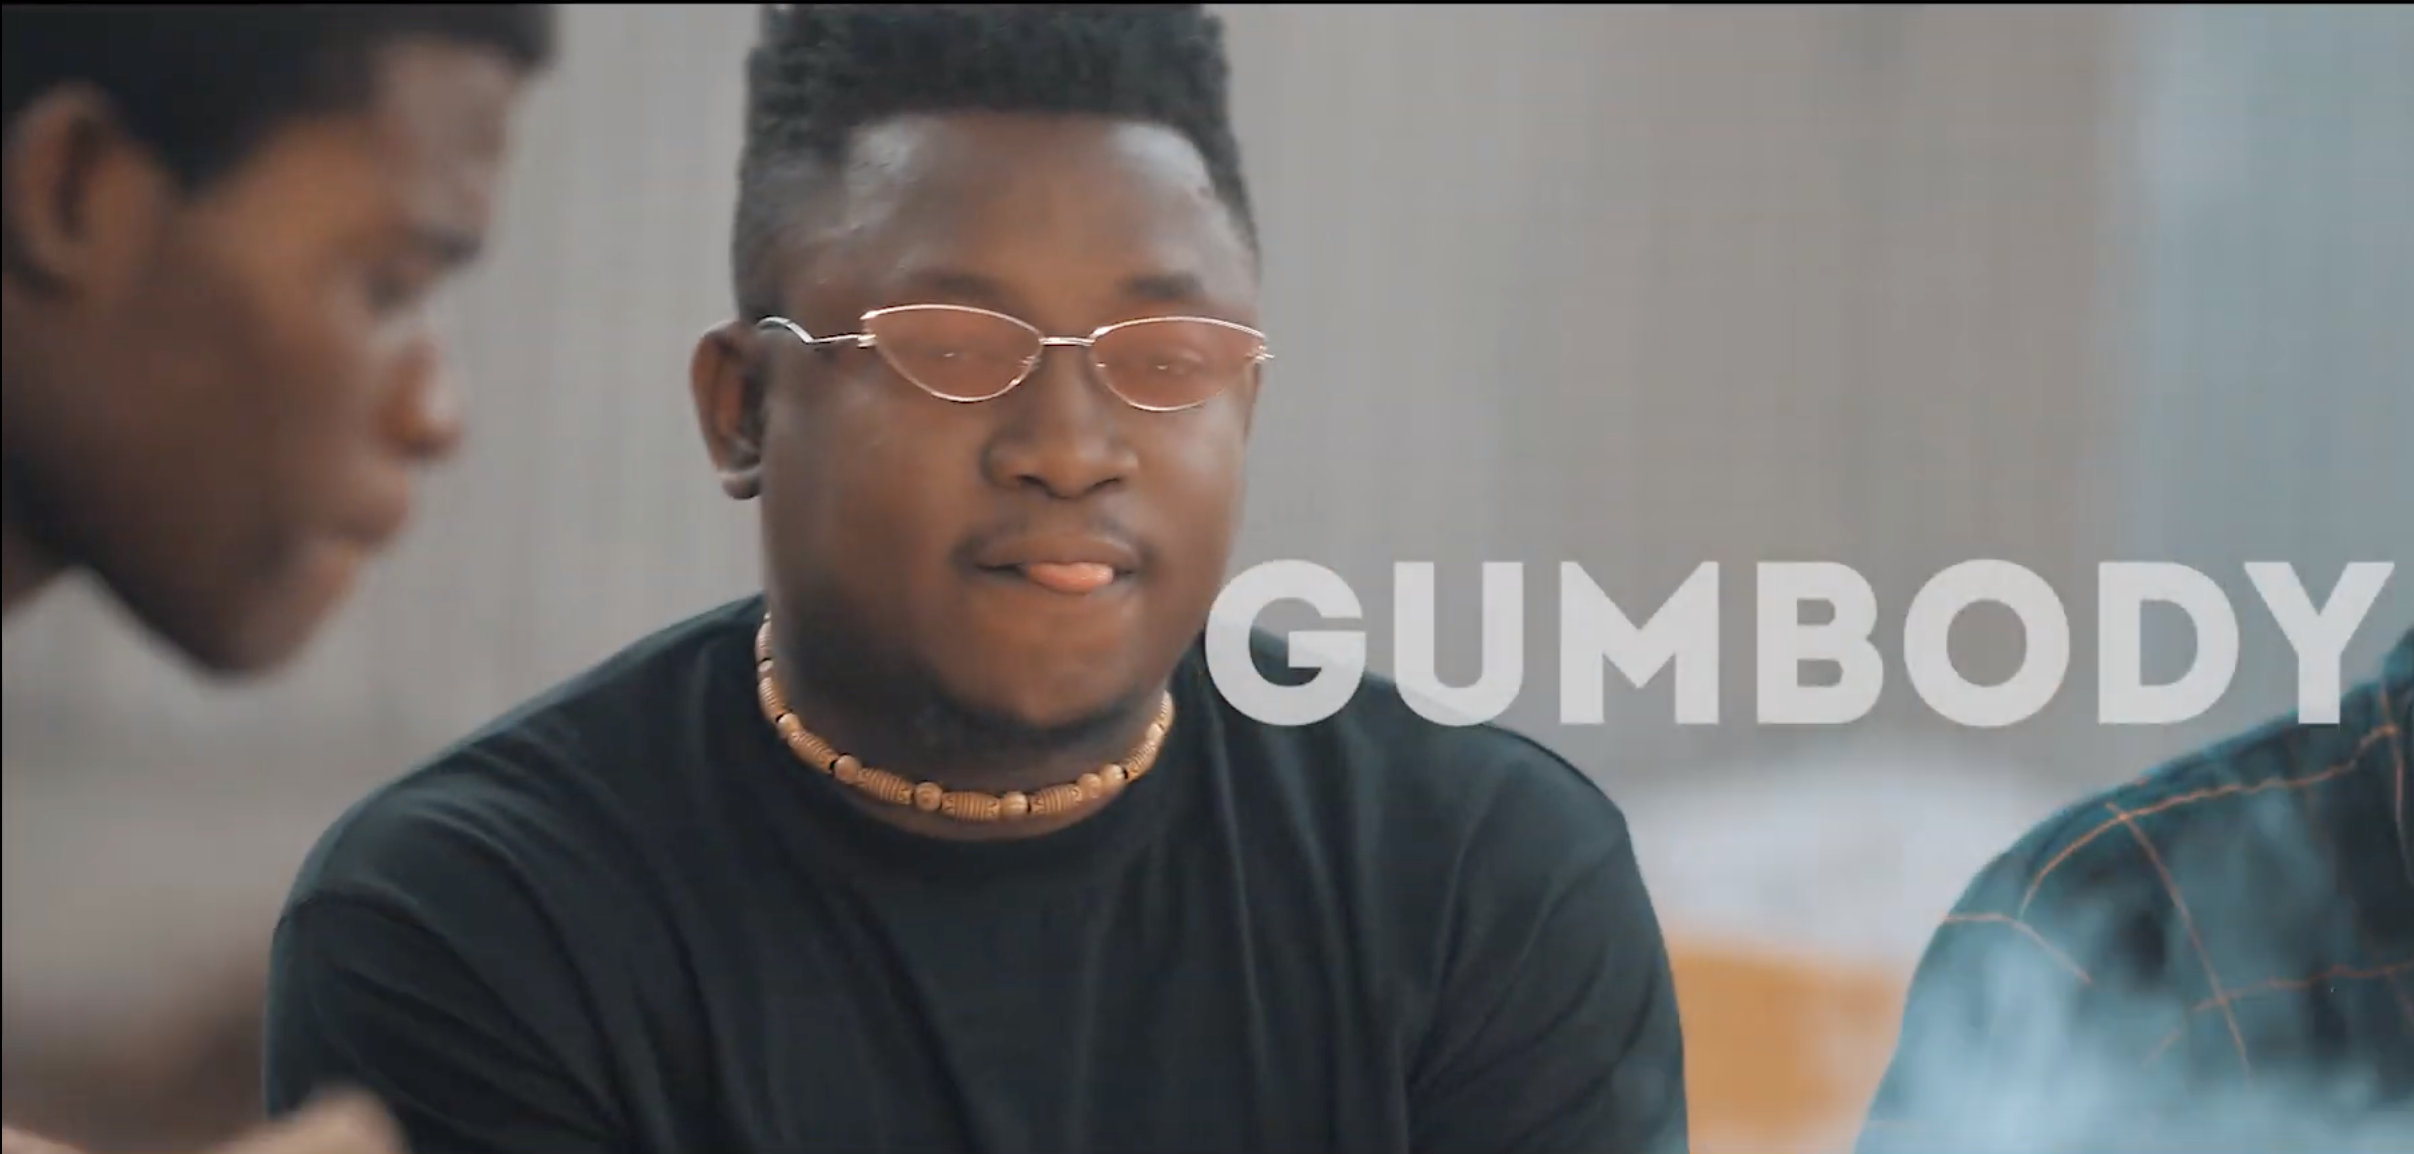 VIDEO: Bukwild – Gum Body